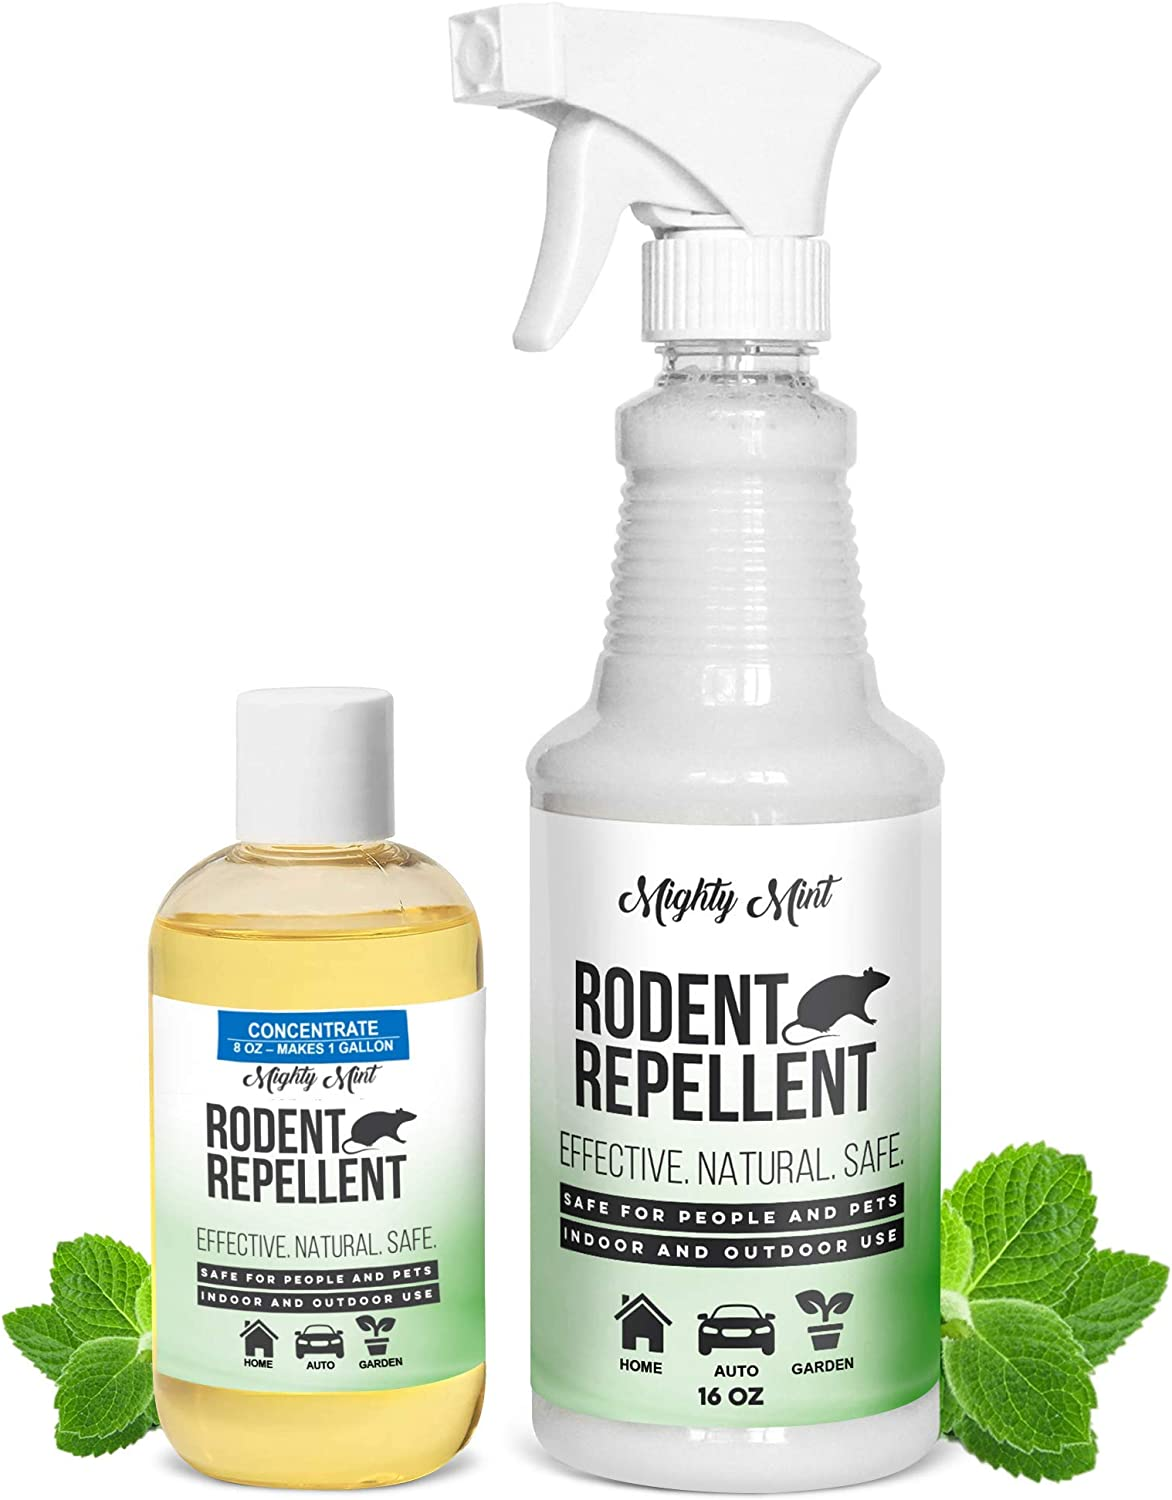 Peppermint Oil Rodent Repellent Spray and Concentrate - Makes 1 Gallon, Non Toxic